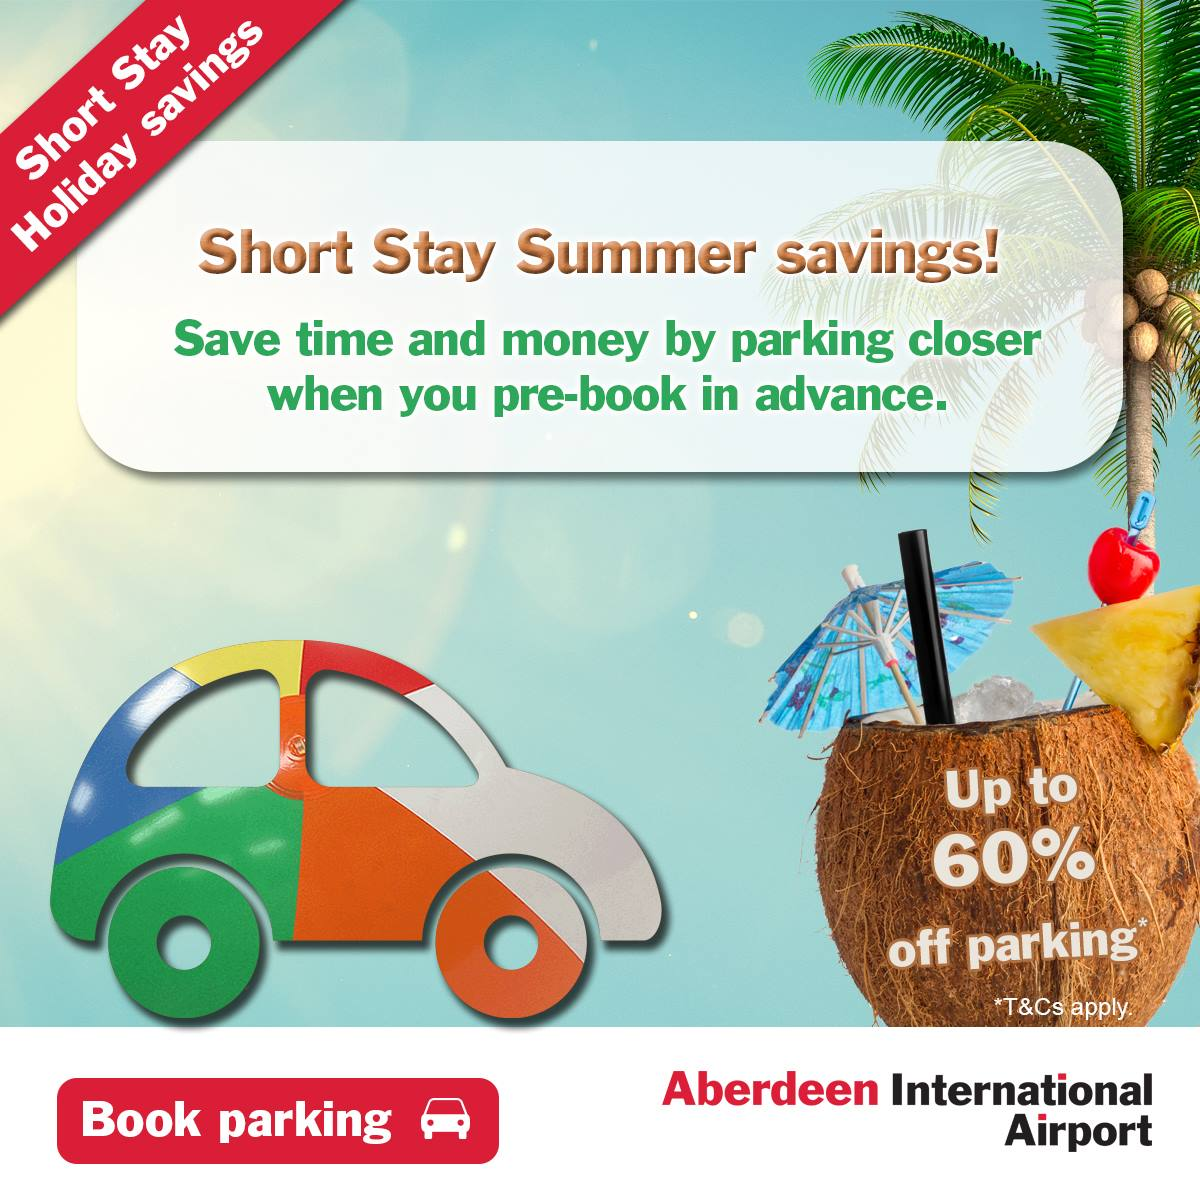 Short Stay Summer Savings! Save time & money! Up to 60% off when you pre-book*. *T&Cs apply.